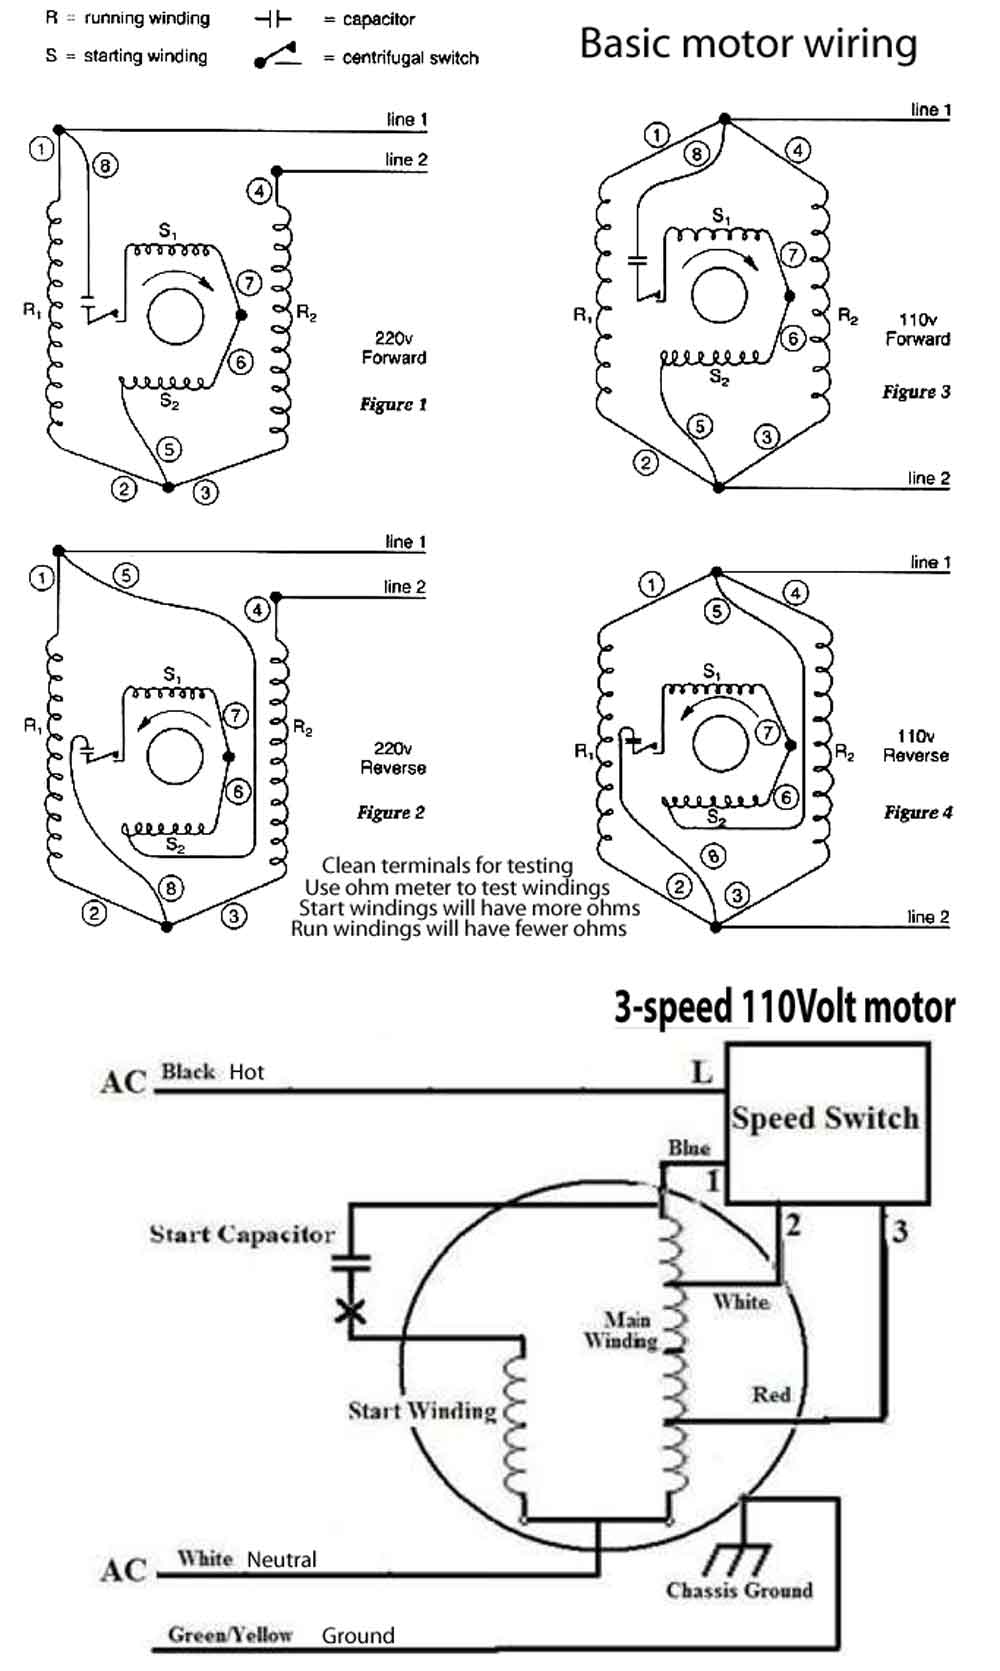 Motor wiring 500 how to wire 3 speed fan switch fan switch wiring diagram at creativeand.co